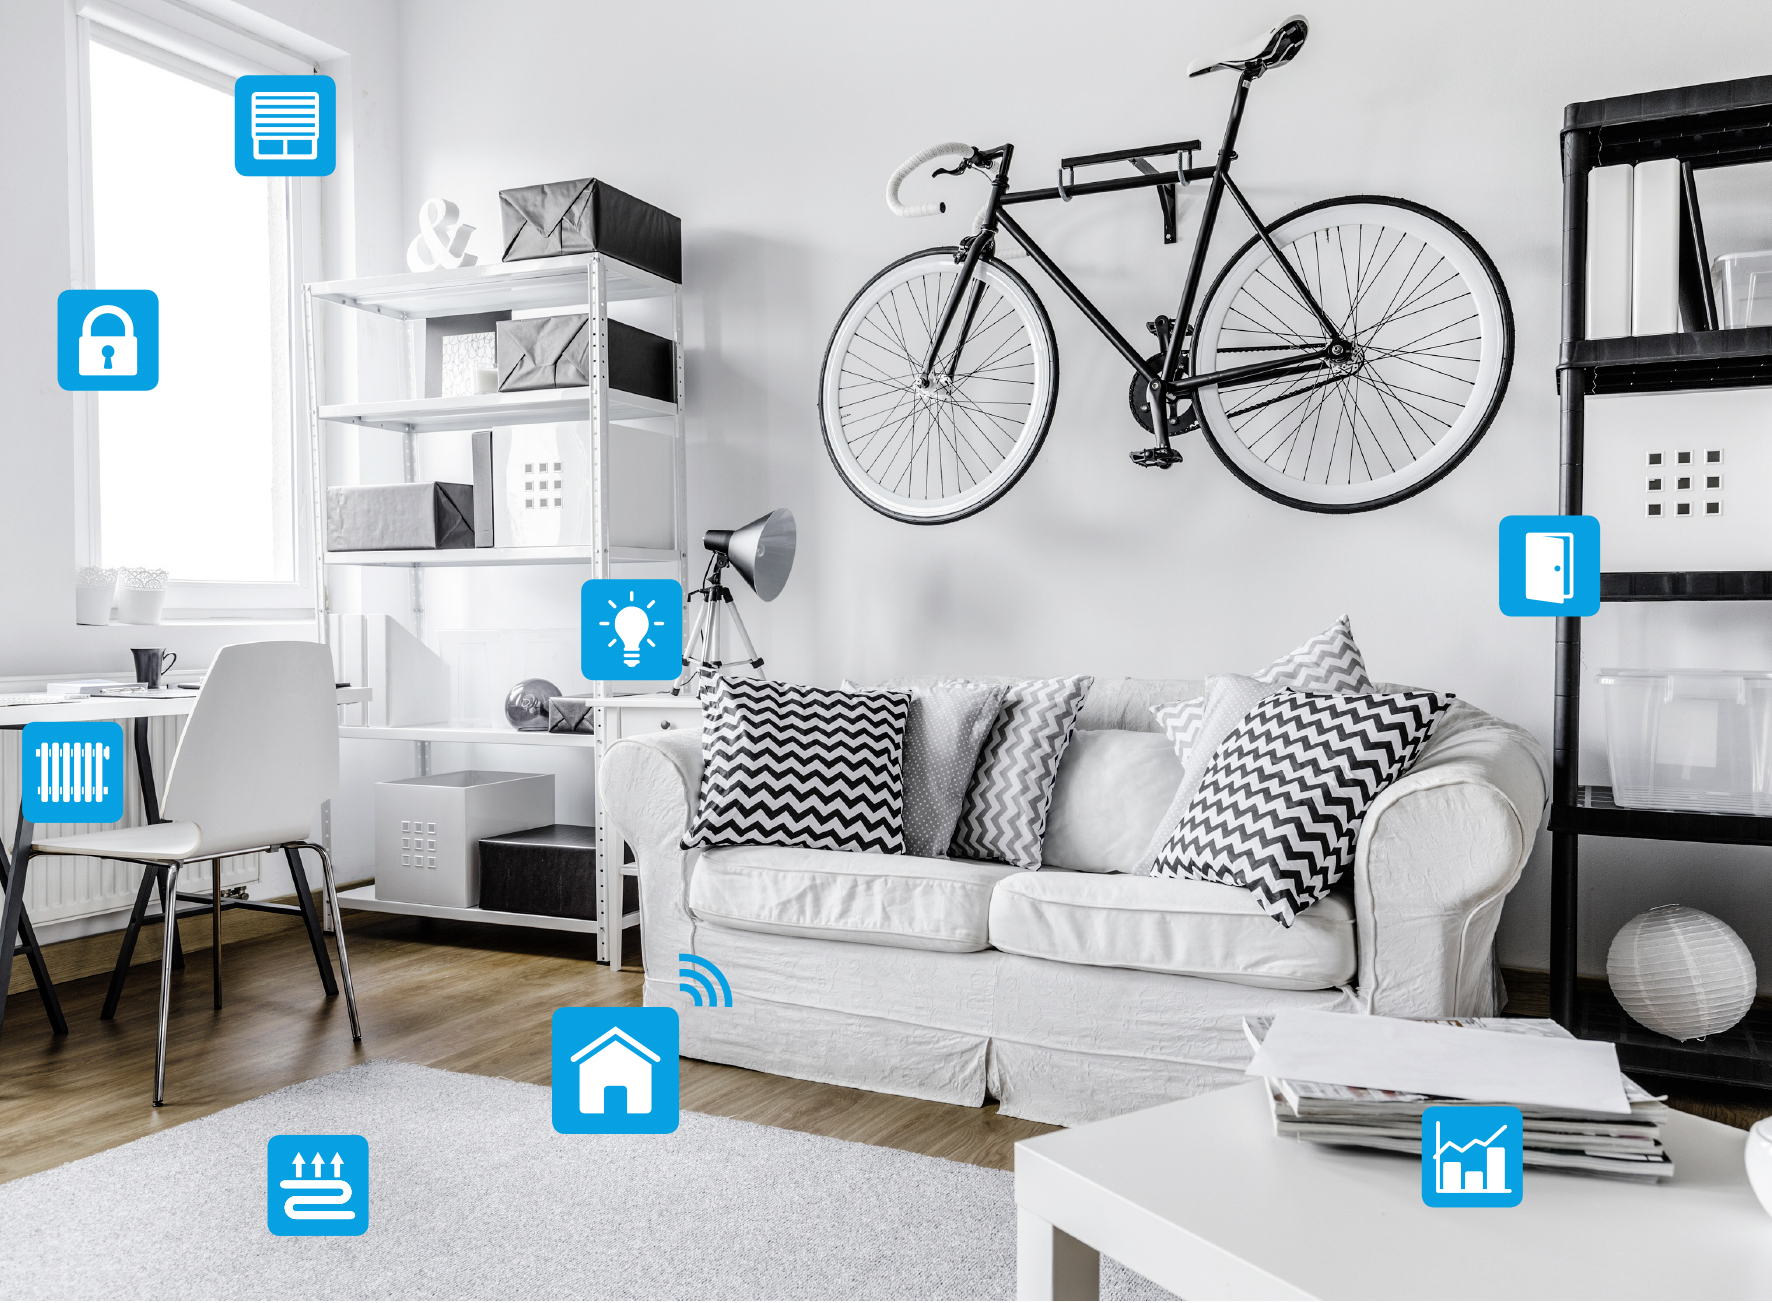 Smarthome Shopping Guide